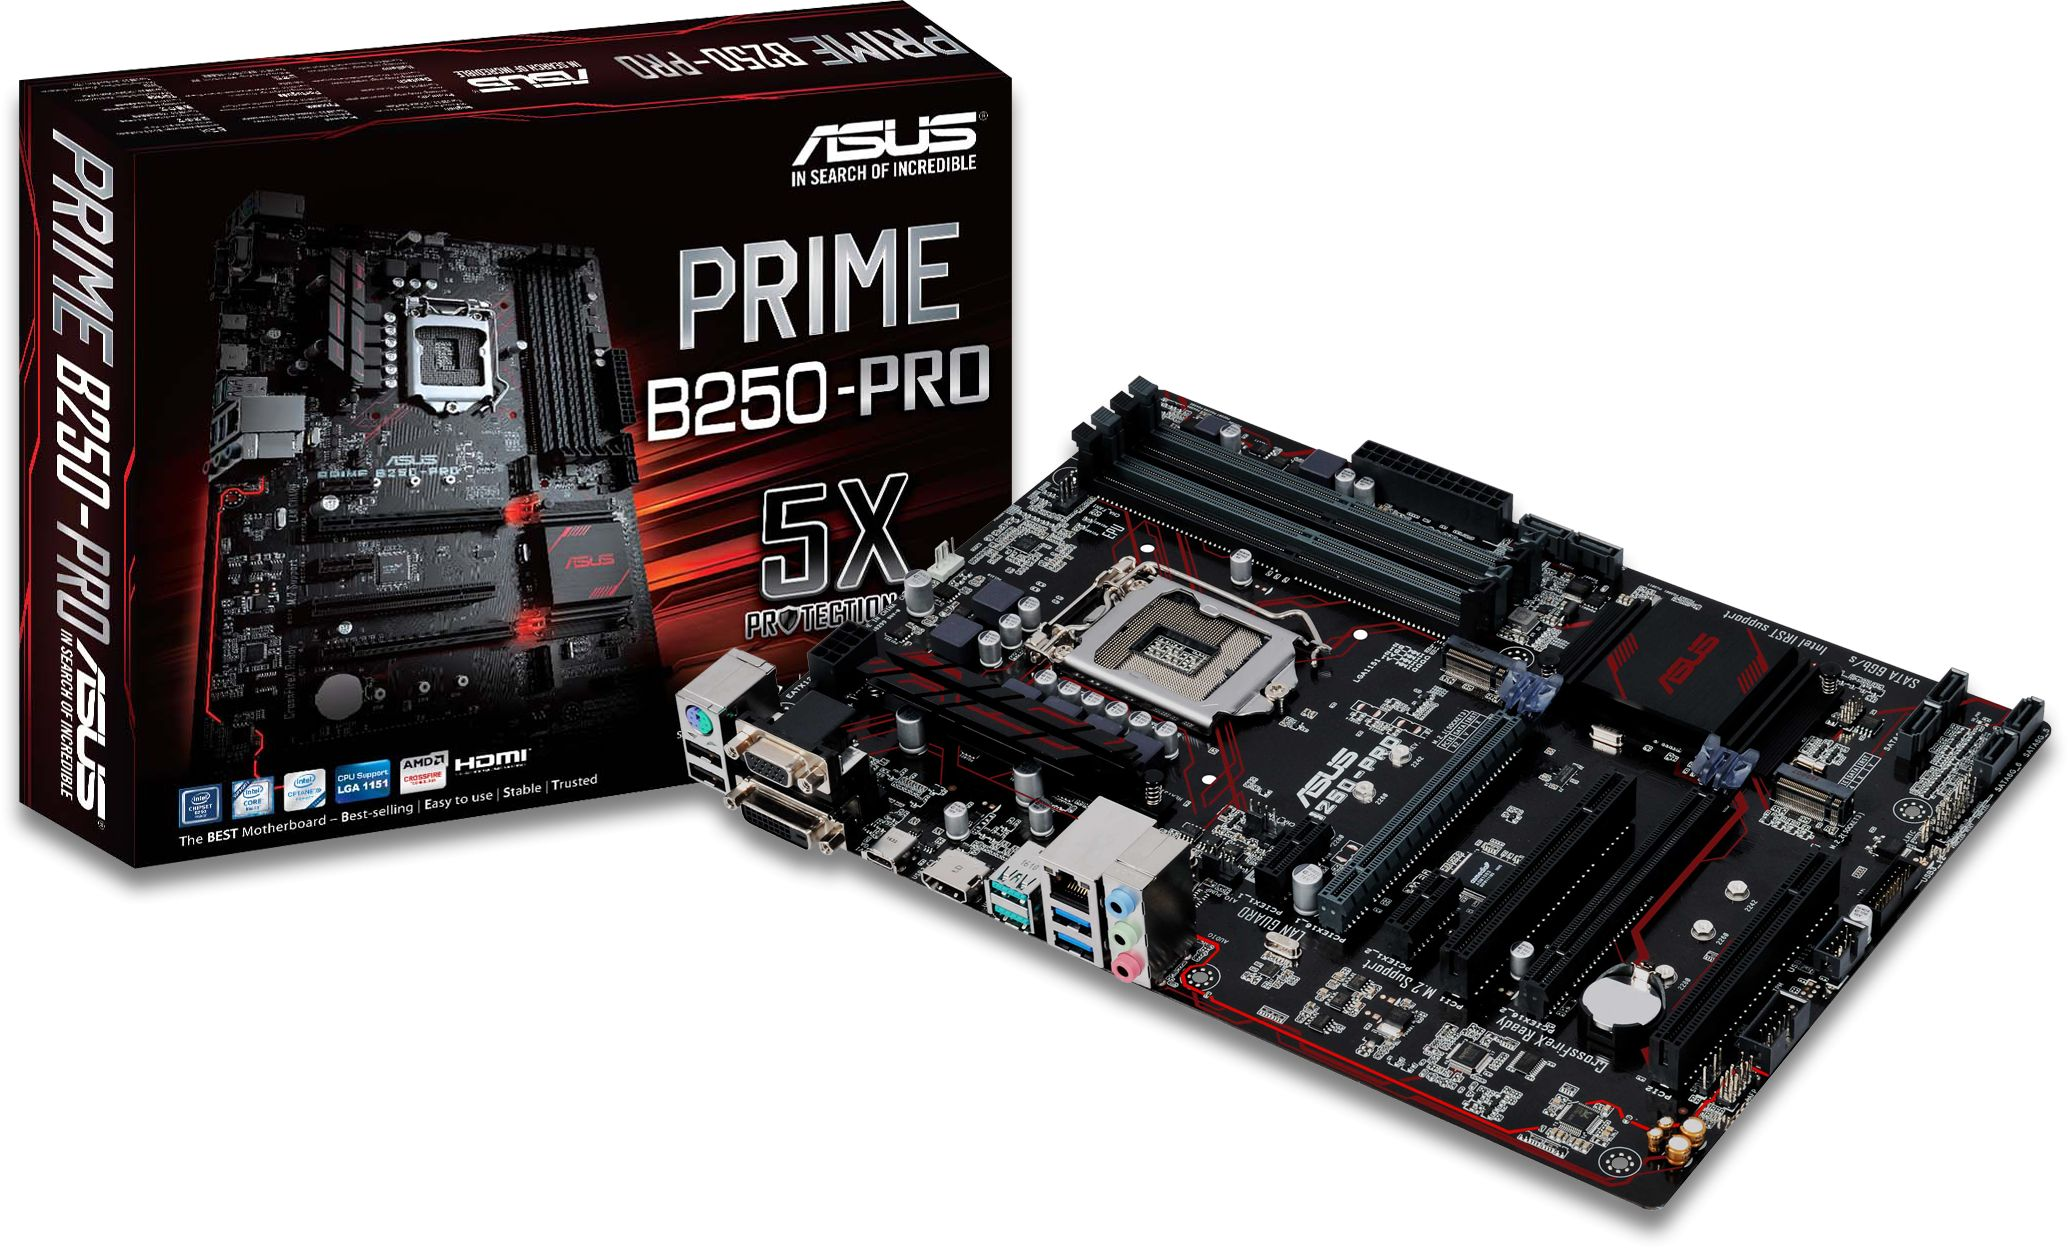 Prime B250 Pro Lga1151 Atx Motherboard Asush170 Socket 1151 Lga Chipset Intel H170 Also Supports Igpu Functionality So Youll Enjoy The Very Latest Integrated Graphics Performance